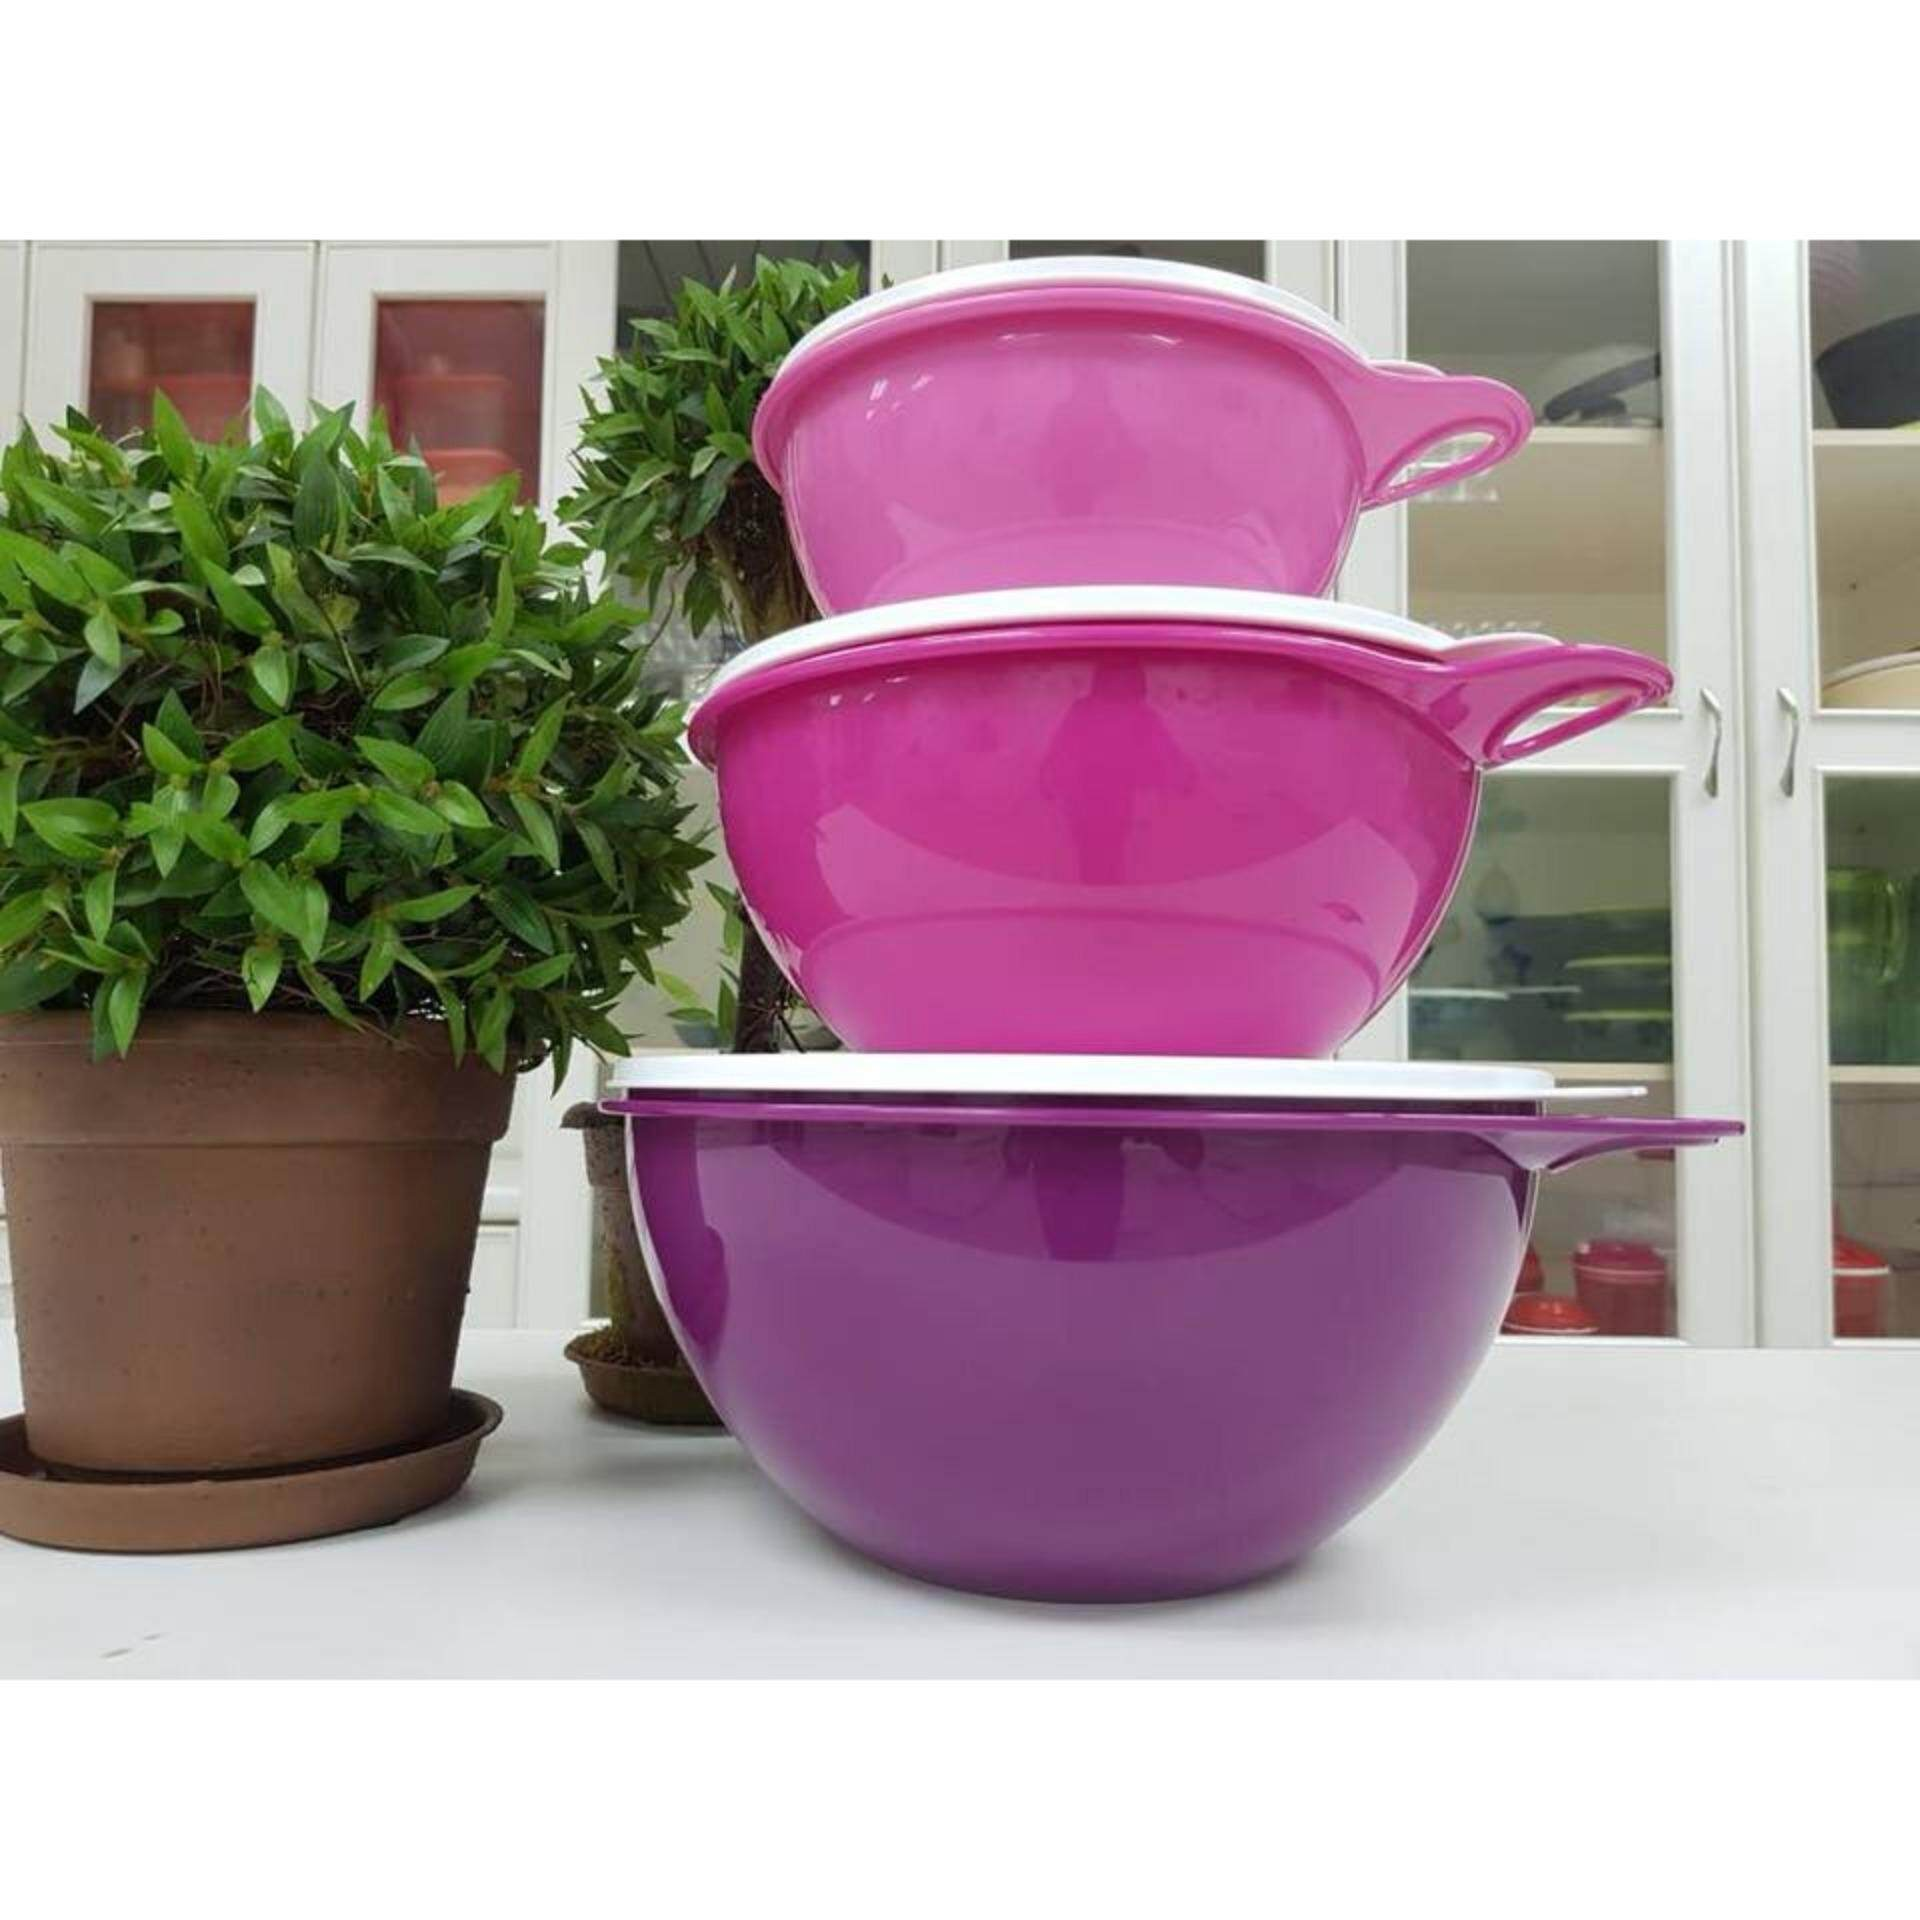 Kios Tupperware Wonderlier Bowl Set 8pc Dan Info Price Terbaru Sweet Blossom Thats A 1l 3l